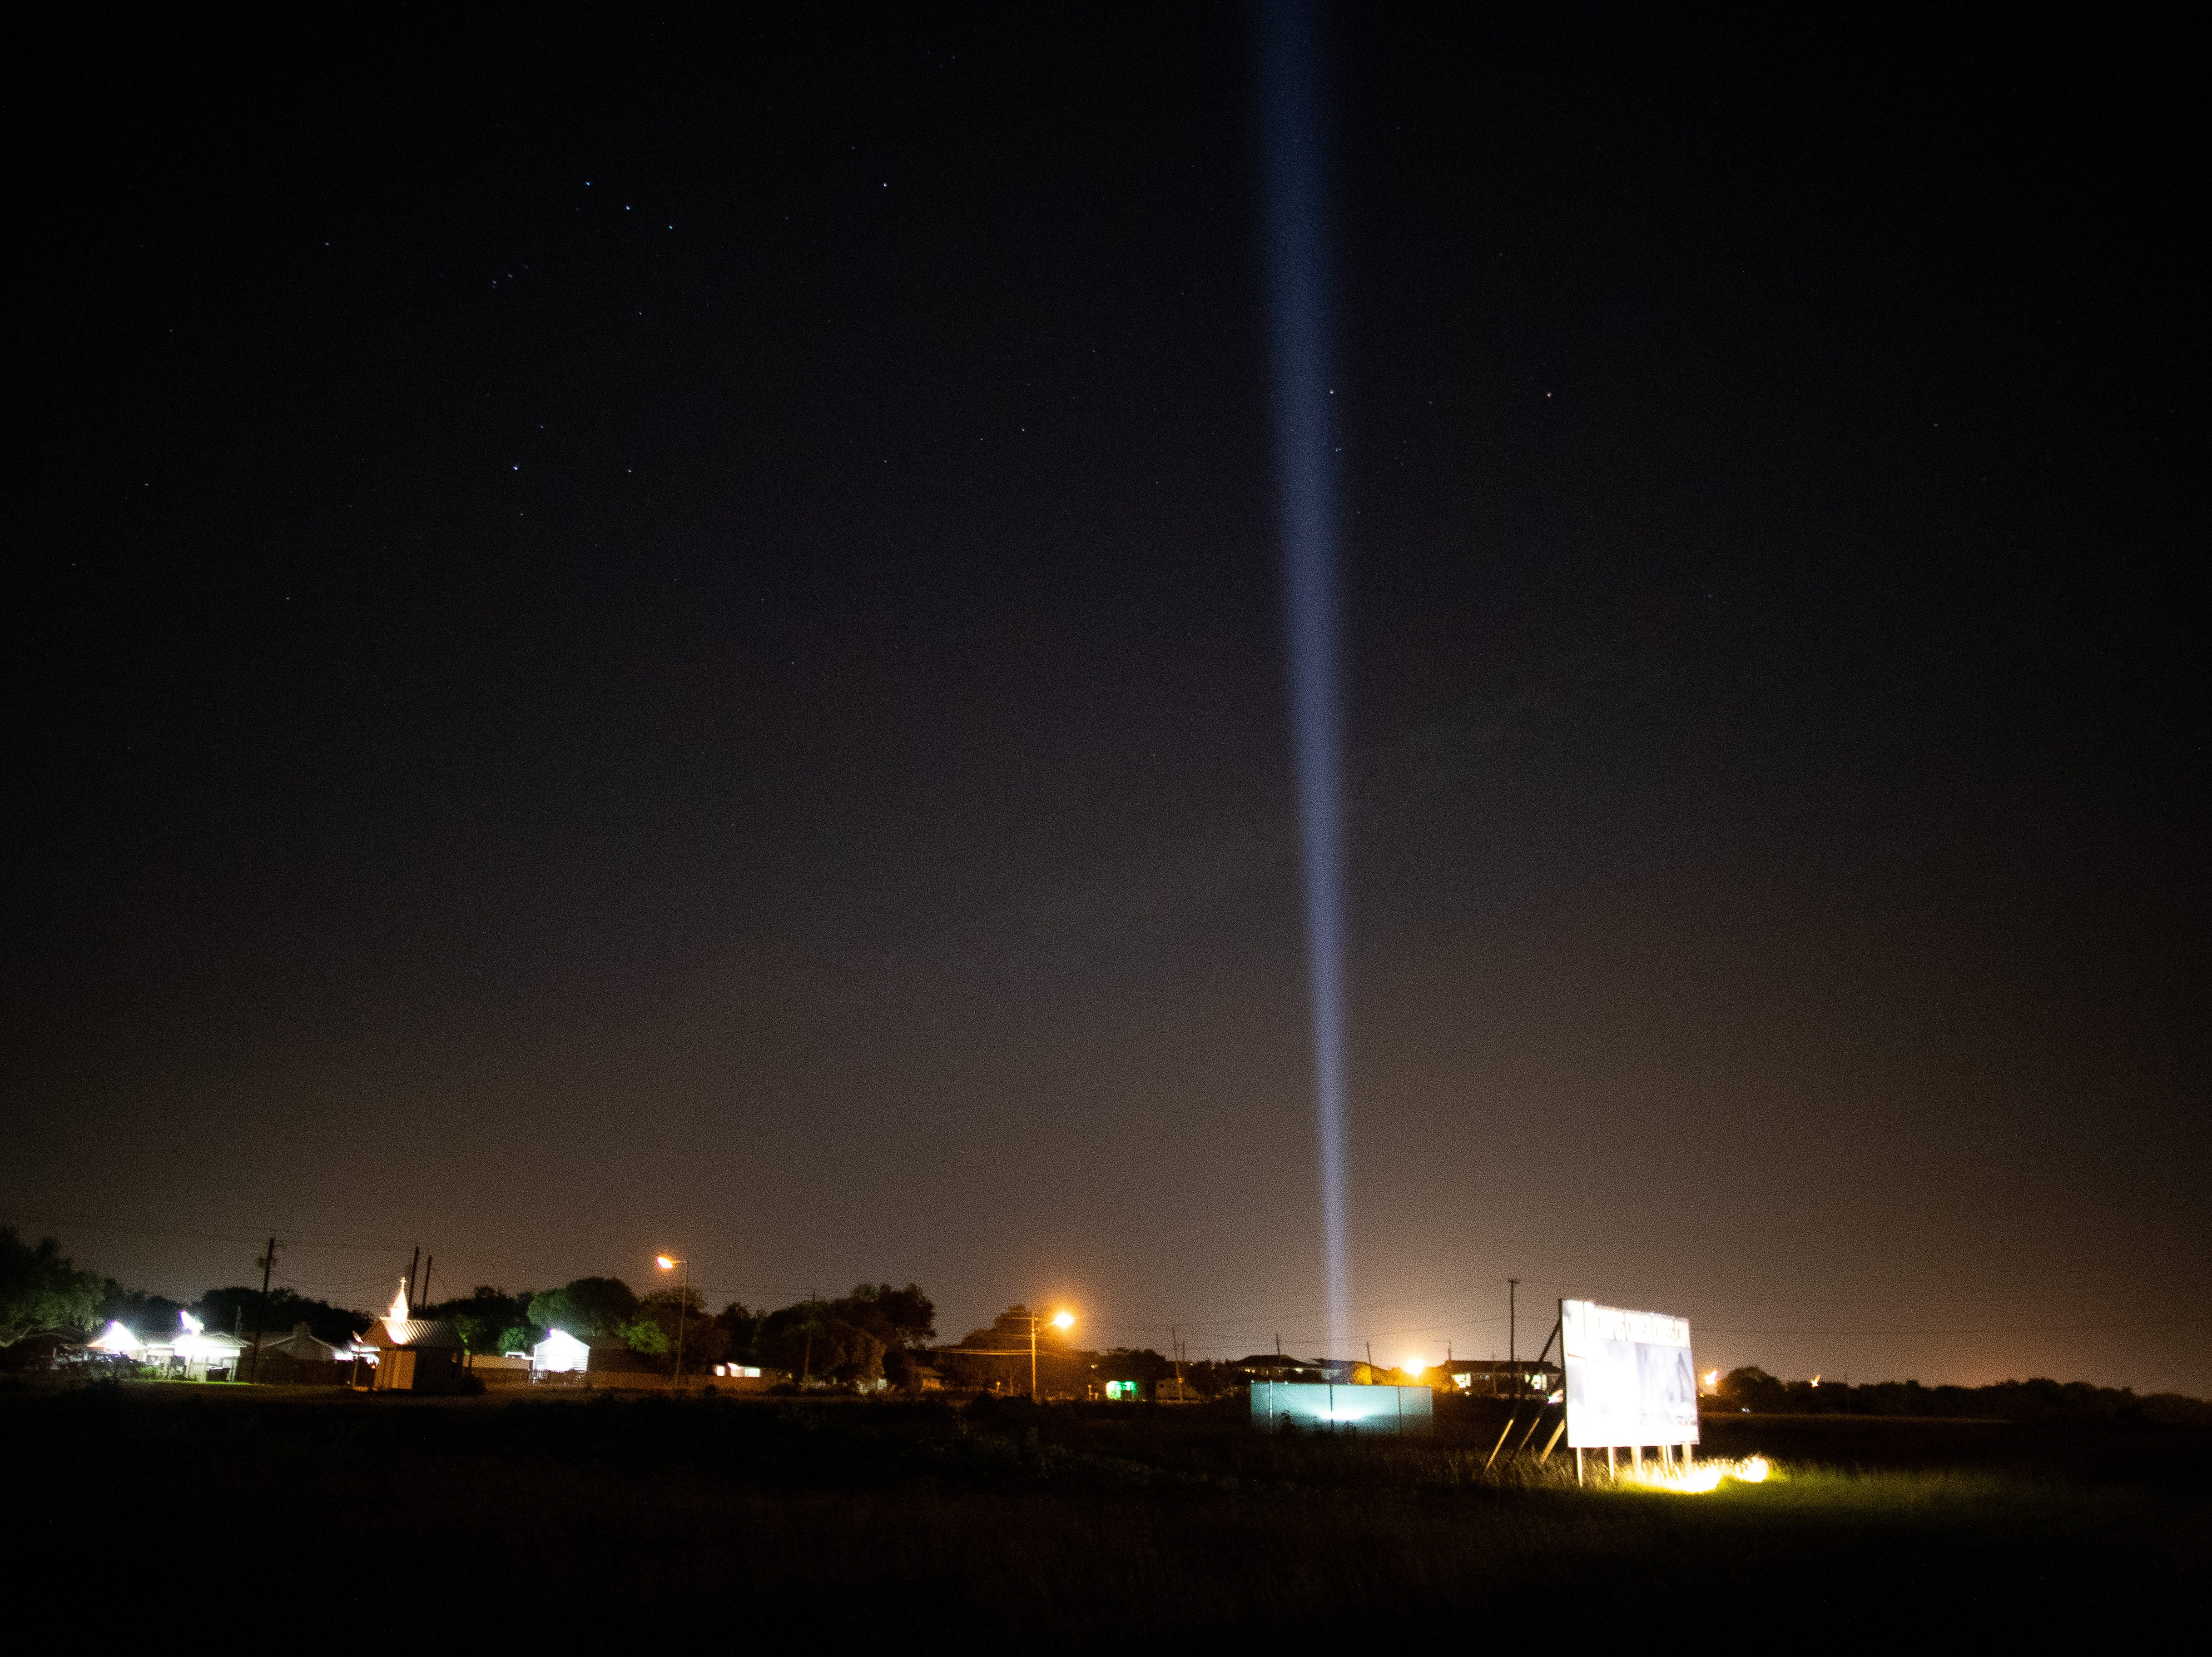 The site of the planned 230-foot Corpus Christi Cross along nterstate Highway 37, near Carbon Plant Road.